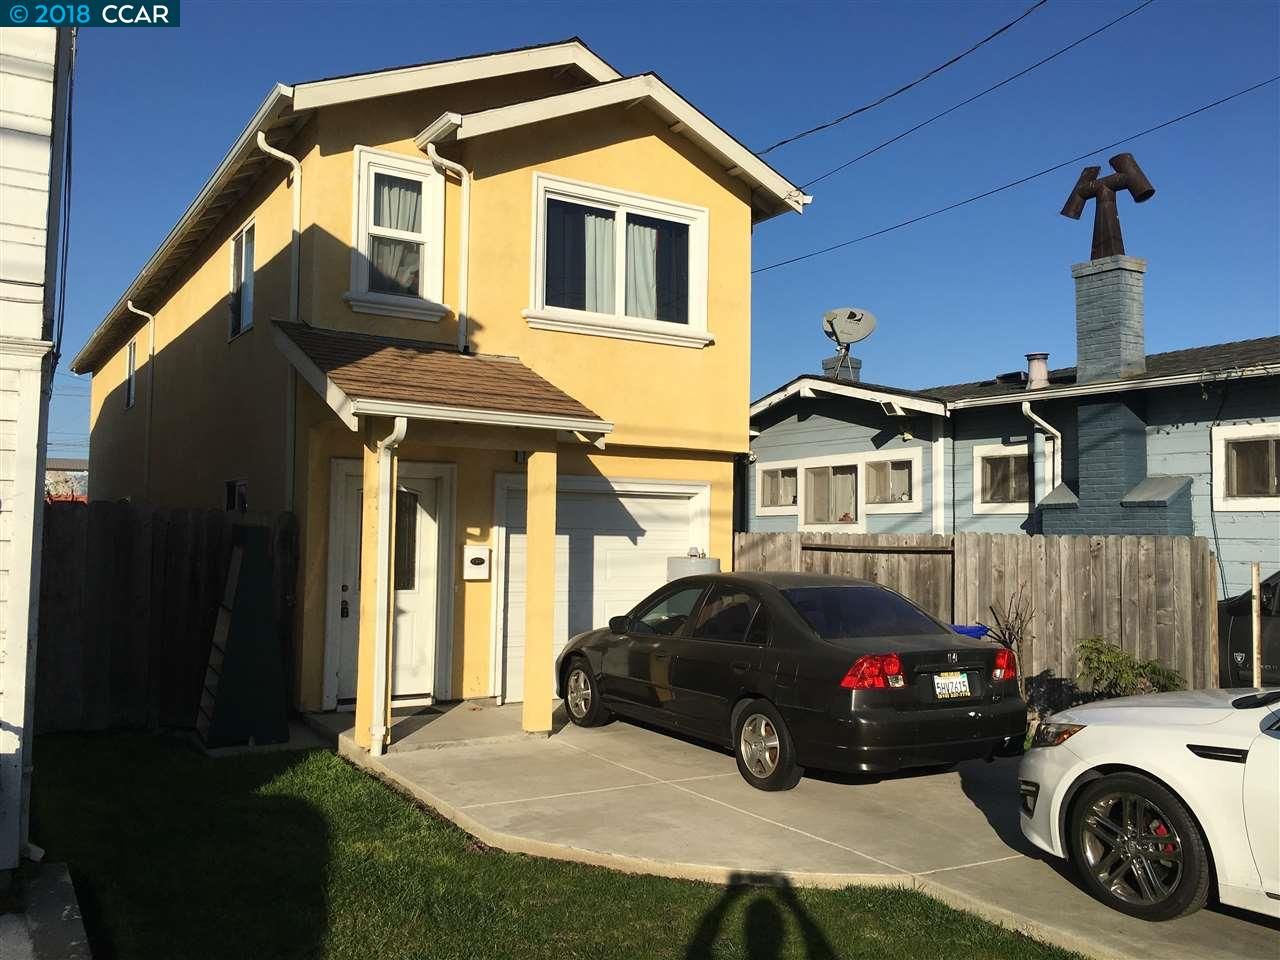 131 11 ST, RICHMOND, CA 94801